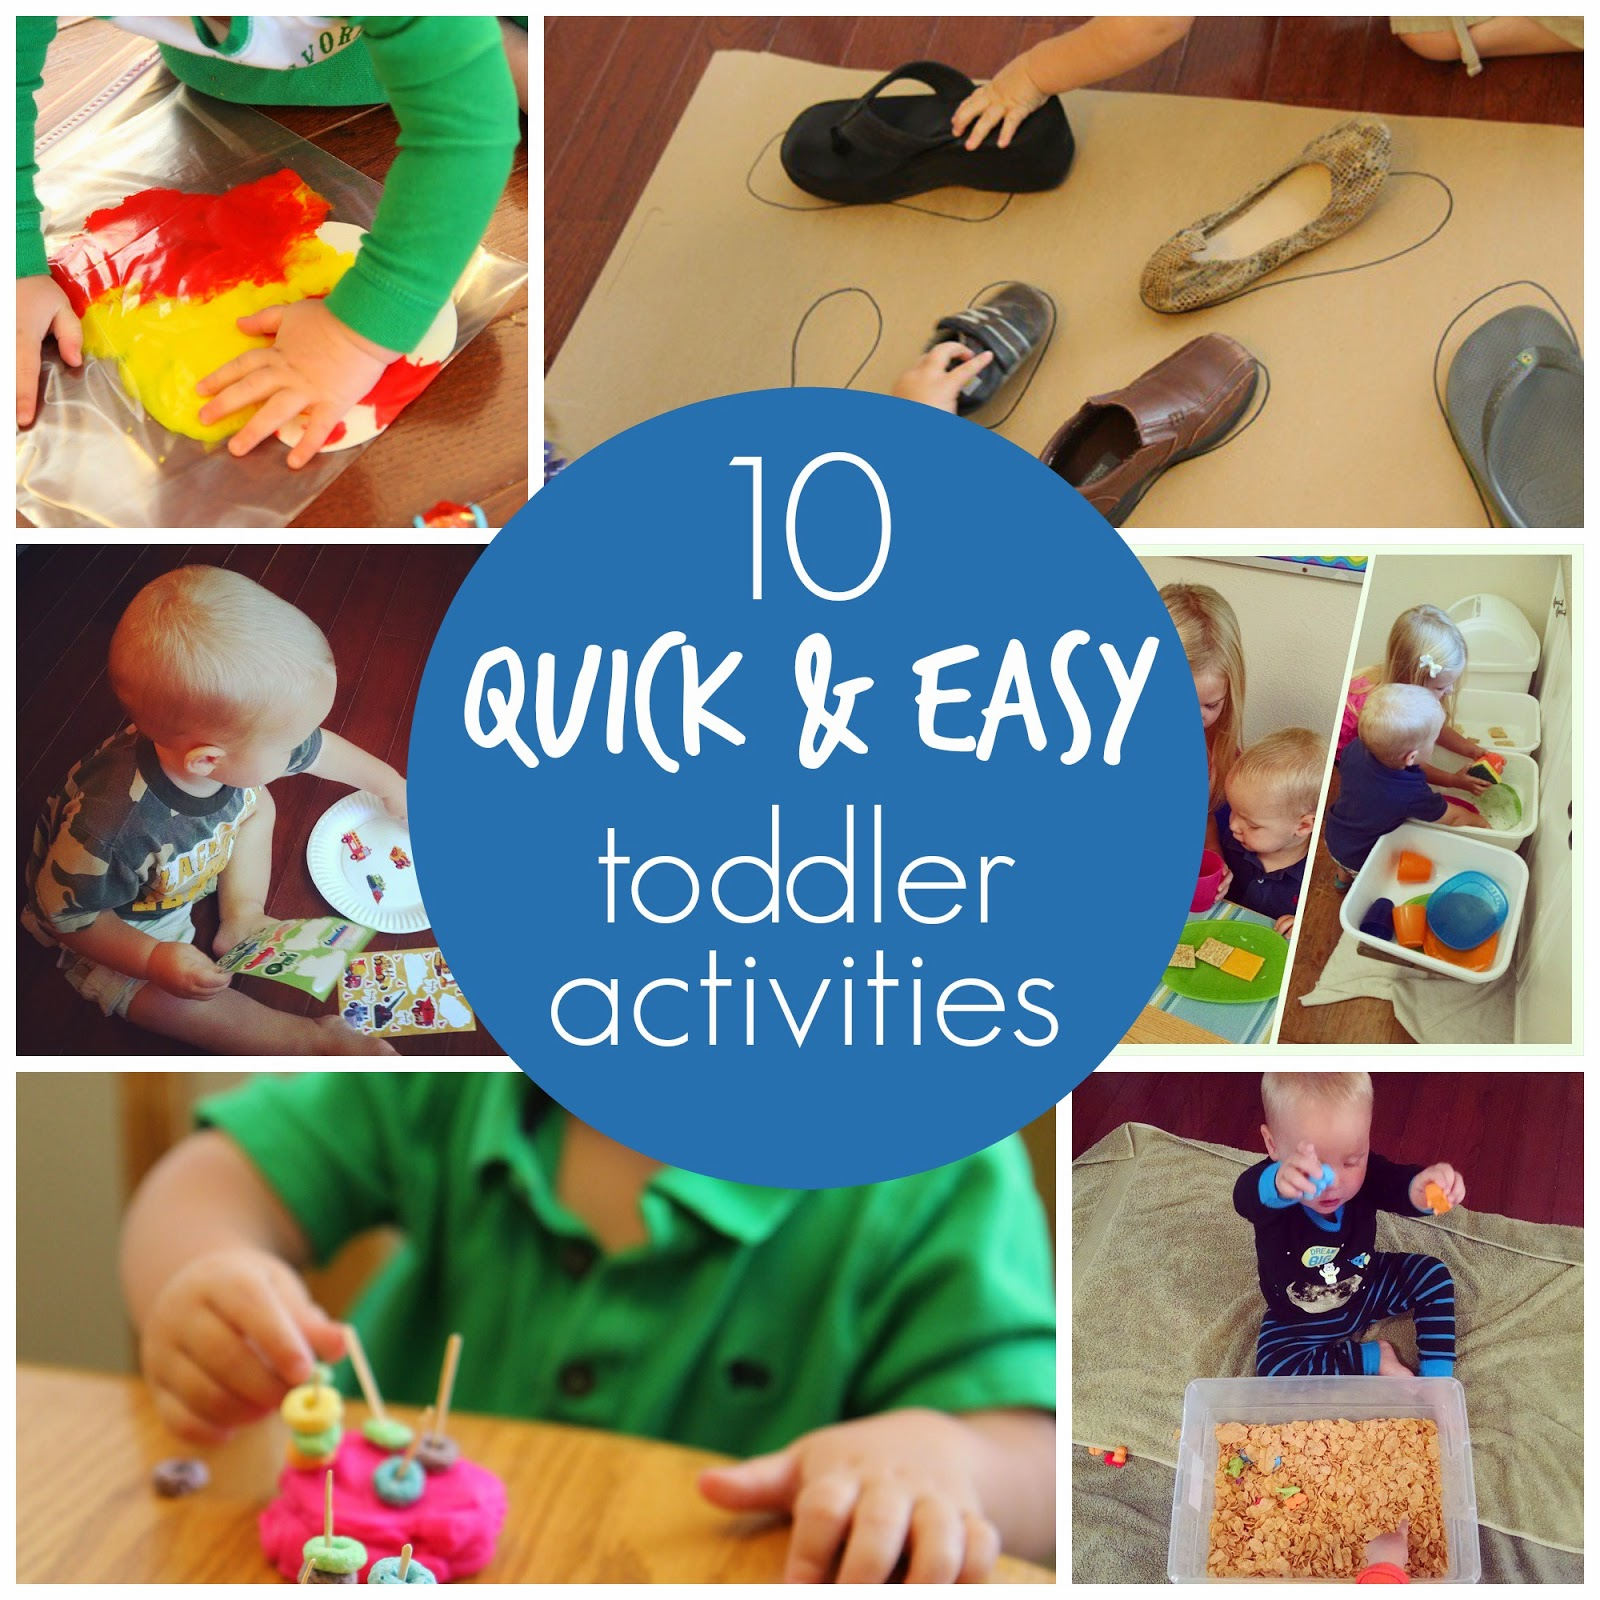 Toddler Approved!: 10 Days Of Simple Toddler Activities